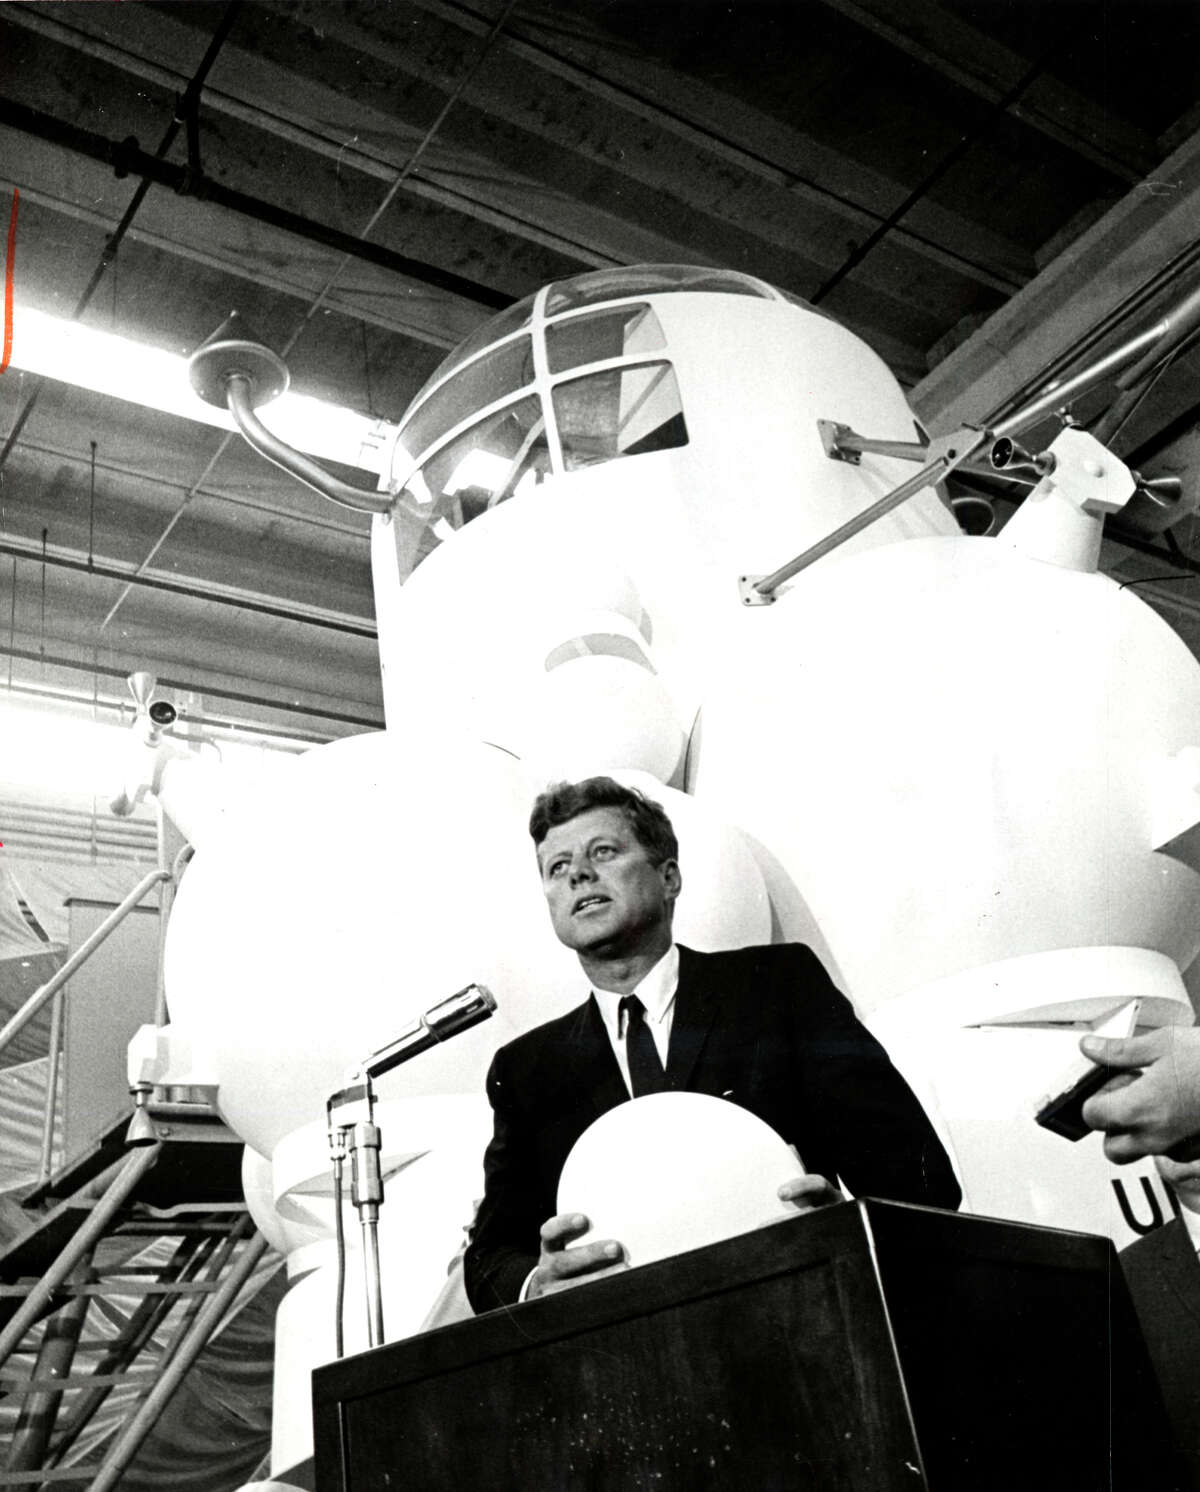 Kennedy's Space Tour, as the press called it in 1962, included a stop at NASA's Spacecraft Research Division, where he stood before the Lunar Excursion Module.